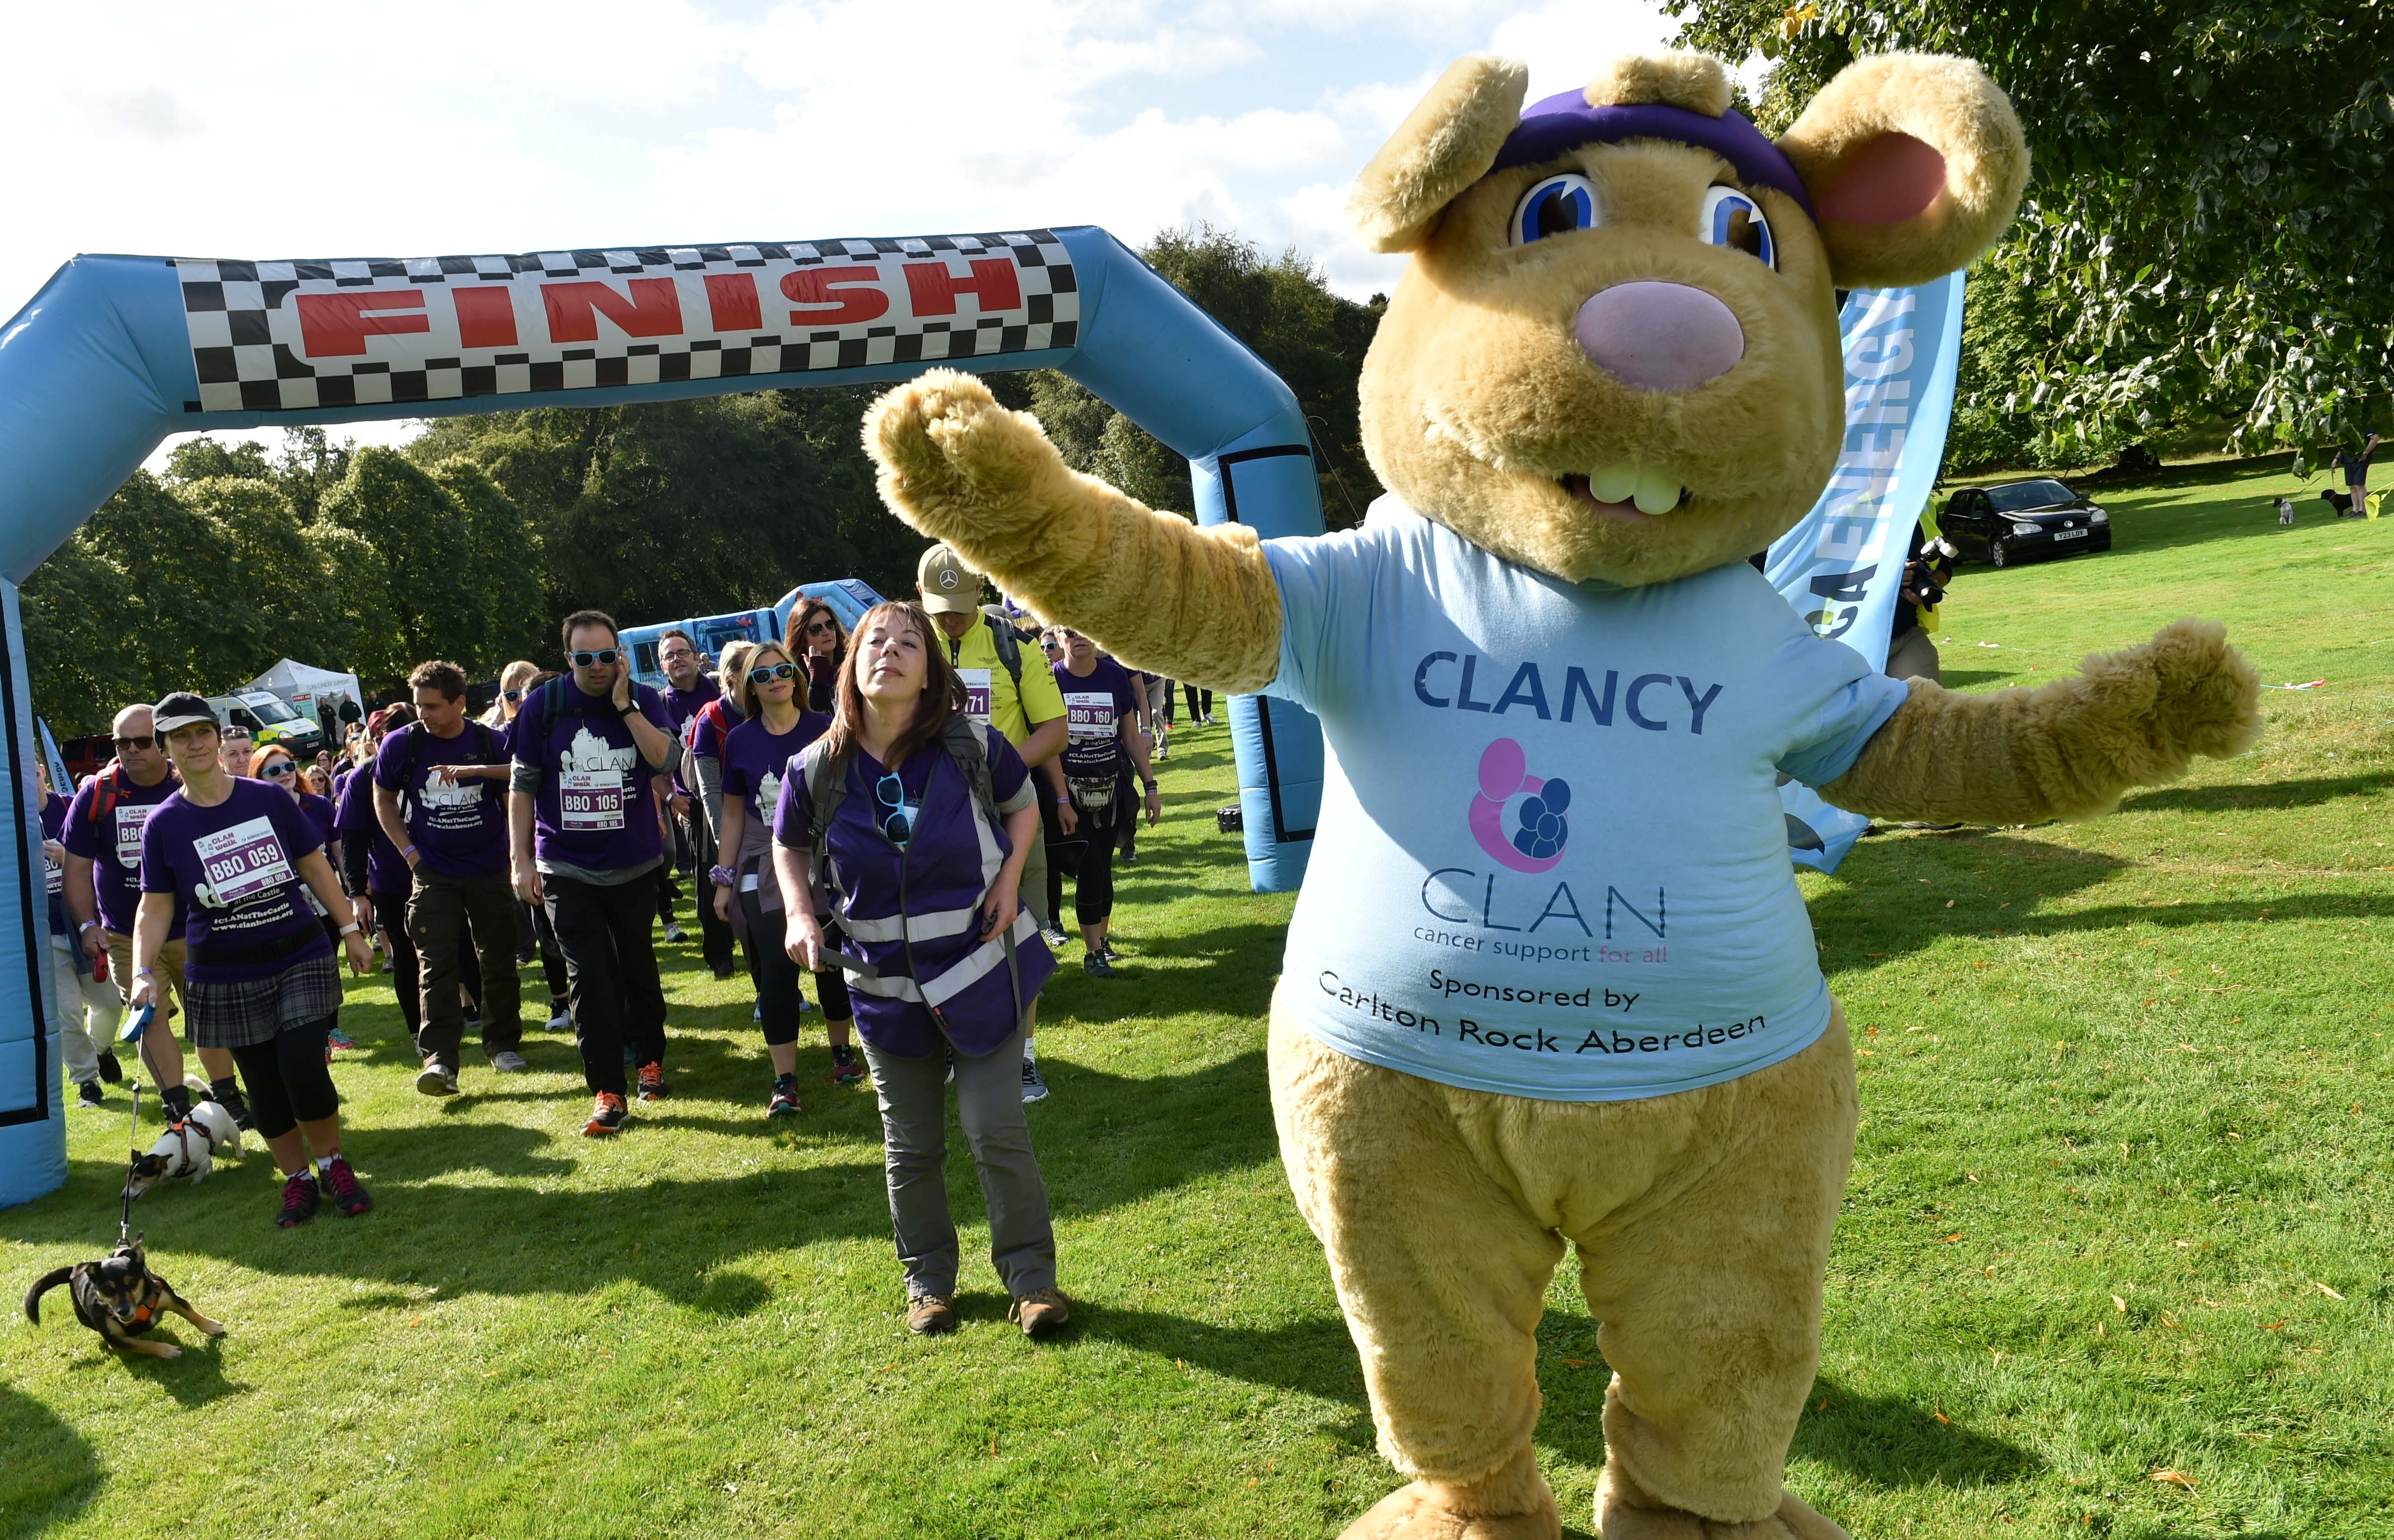 Warming up with Clan mascot Clancy the rabbit. Picture by Colin Rennie